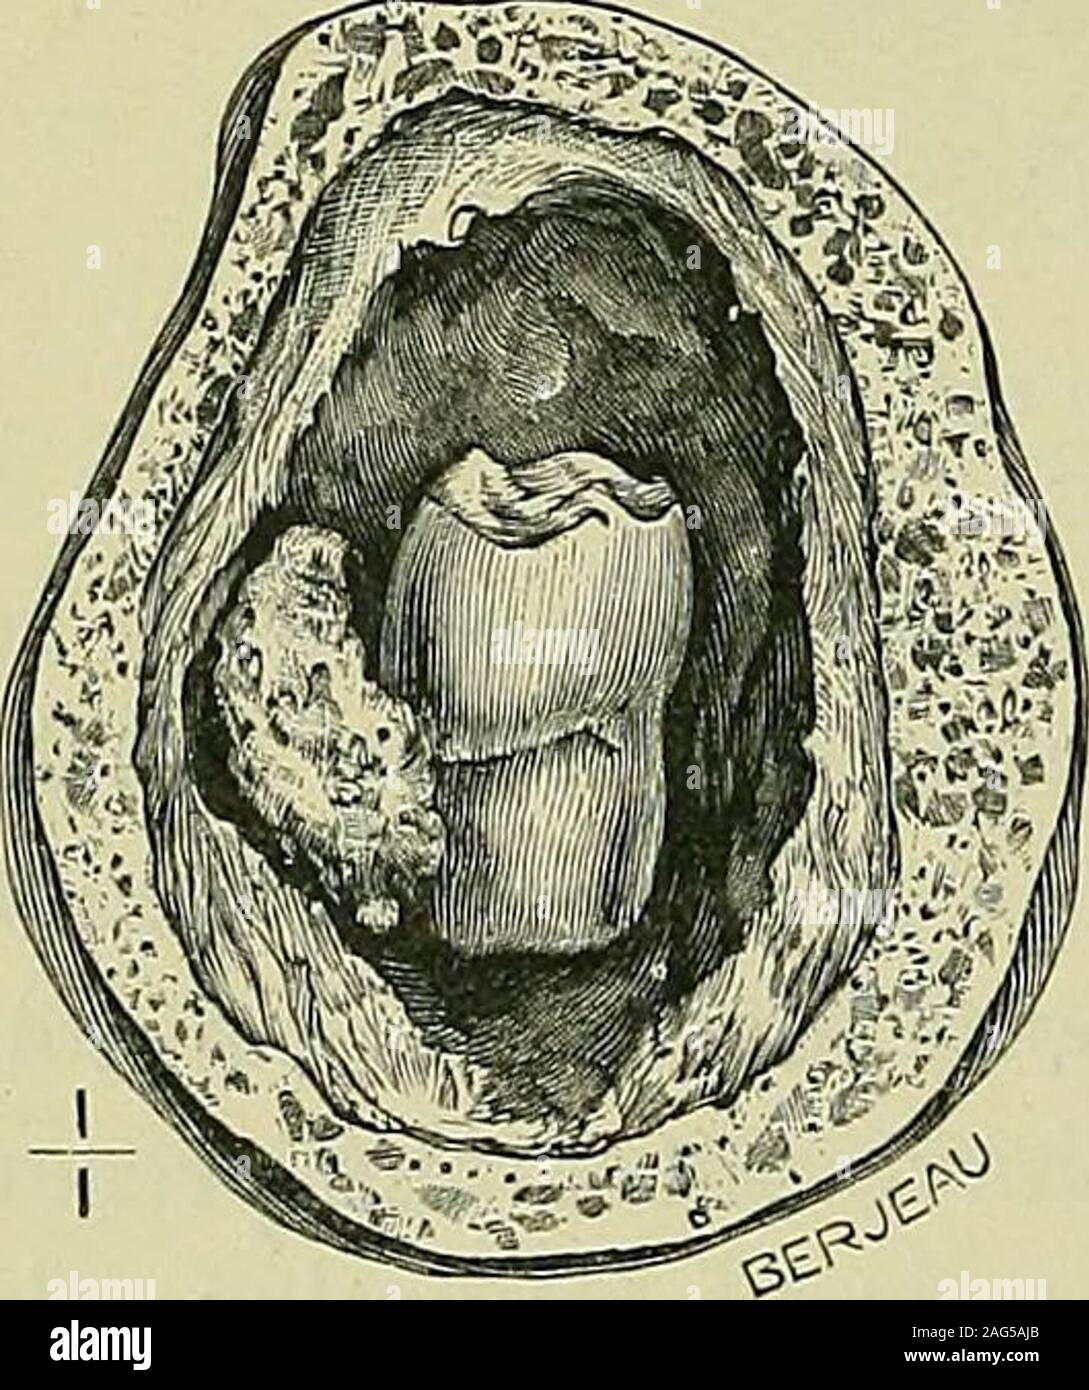 . Tumours, innocent and malignant; their clinical characters and appropriate treatment. Fig. 115.—Follicular odontomas from the mandible. in the museum of the Royal College of Surgeons, is a goodexample of this condition.) Hopewell Smith found that a tooth from a follicularodontome had no Nasmyths membrane, and suggests thatthe fluid within these tumours is probably formed from thedegeneration and liquefaction of the stellate reticulum.. Fig. 116.—Follicular odon-tome from the right halfof a mandible, removedfrom a boy aged 14years, by Wormald, 1850.{Museum of the Royal Col-lege of Surgeons.) Stock Photo